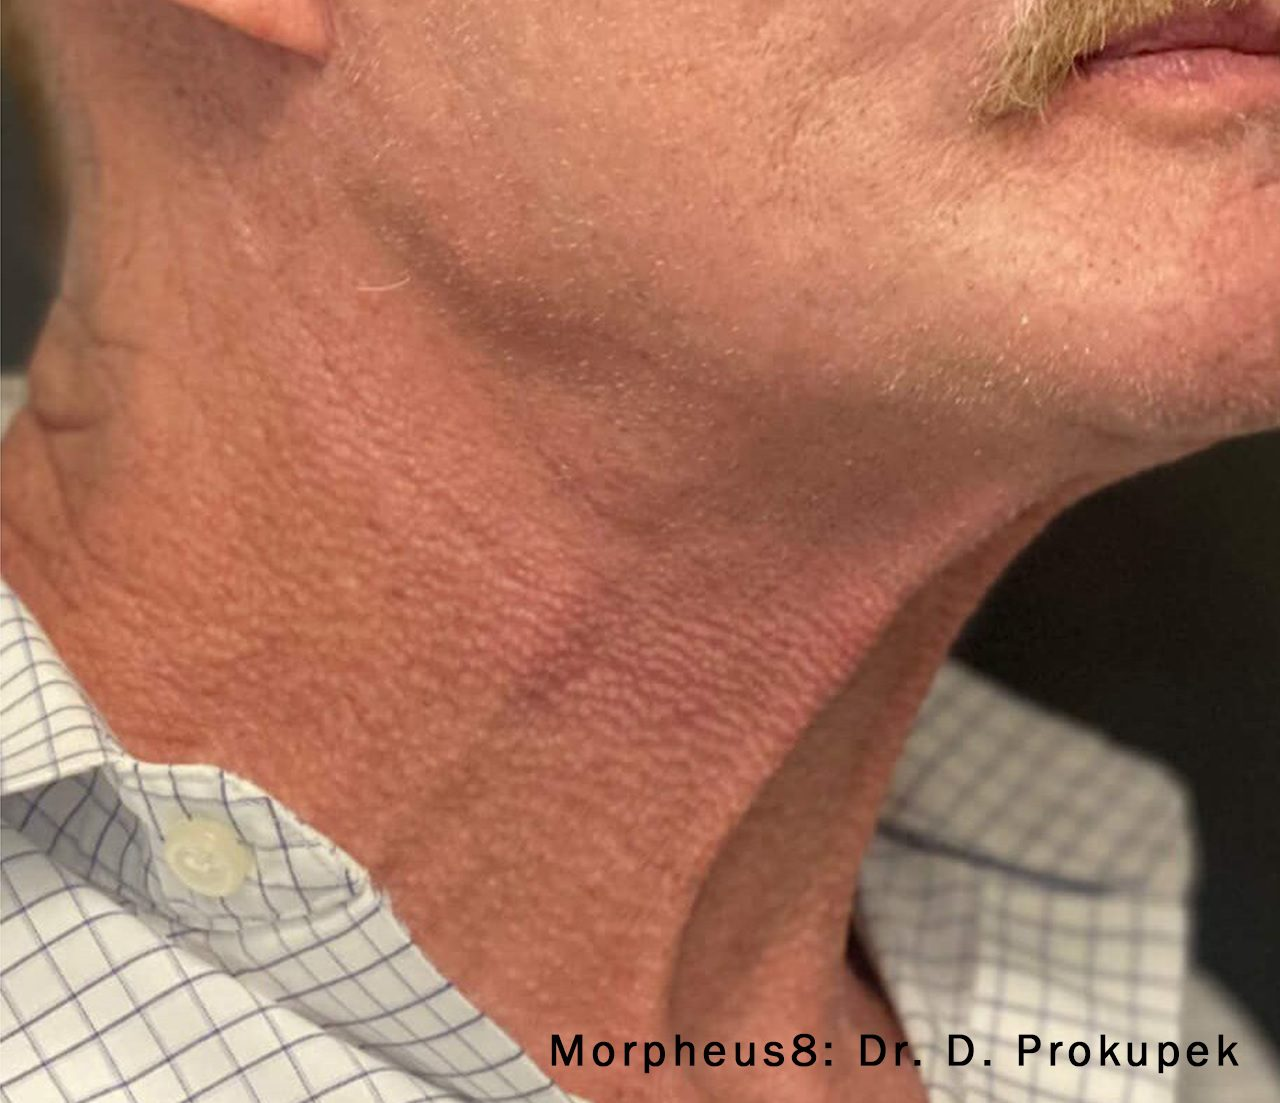 Morpheus8 neck and jawline after